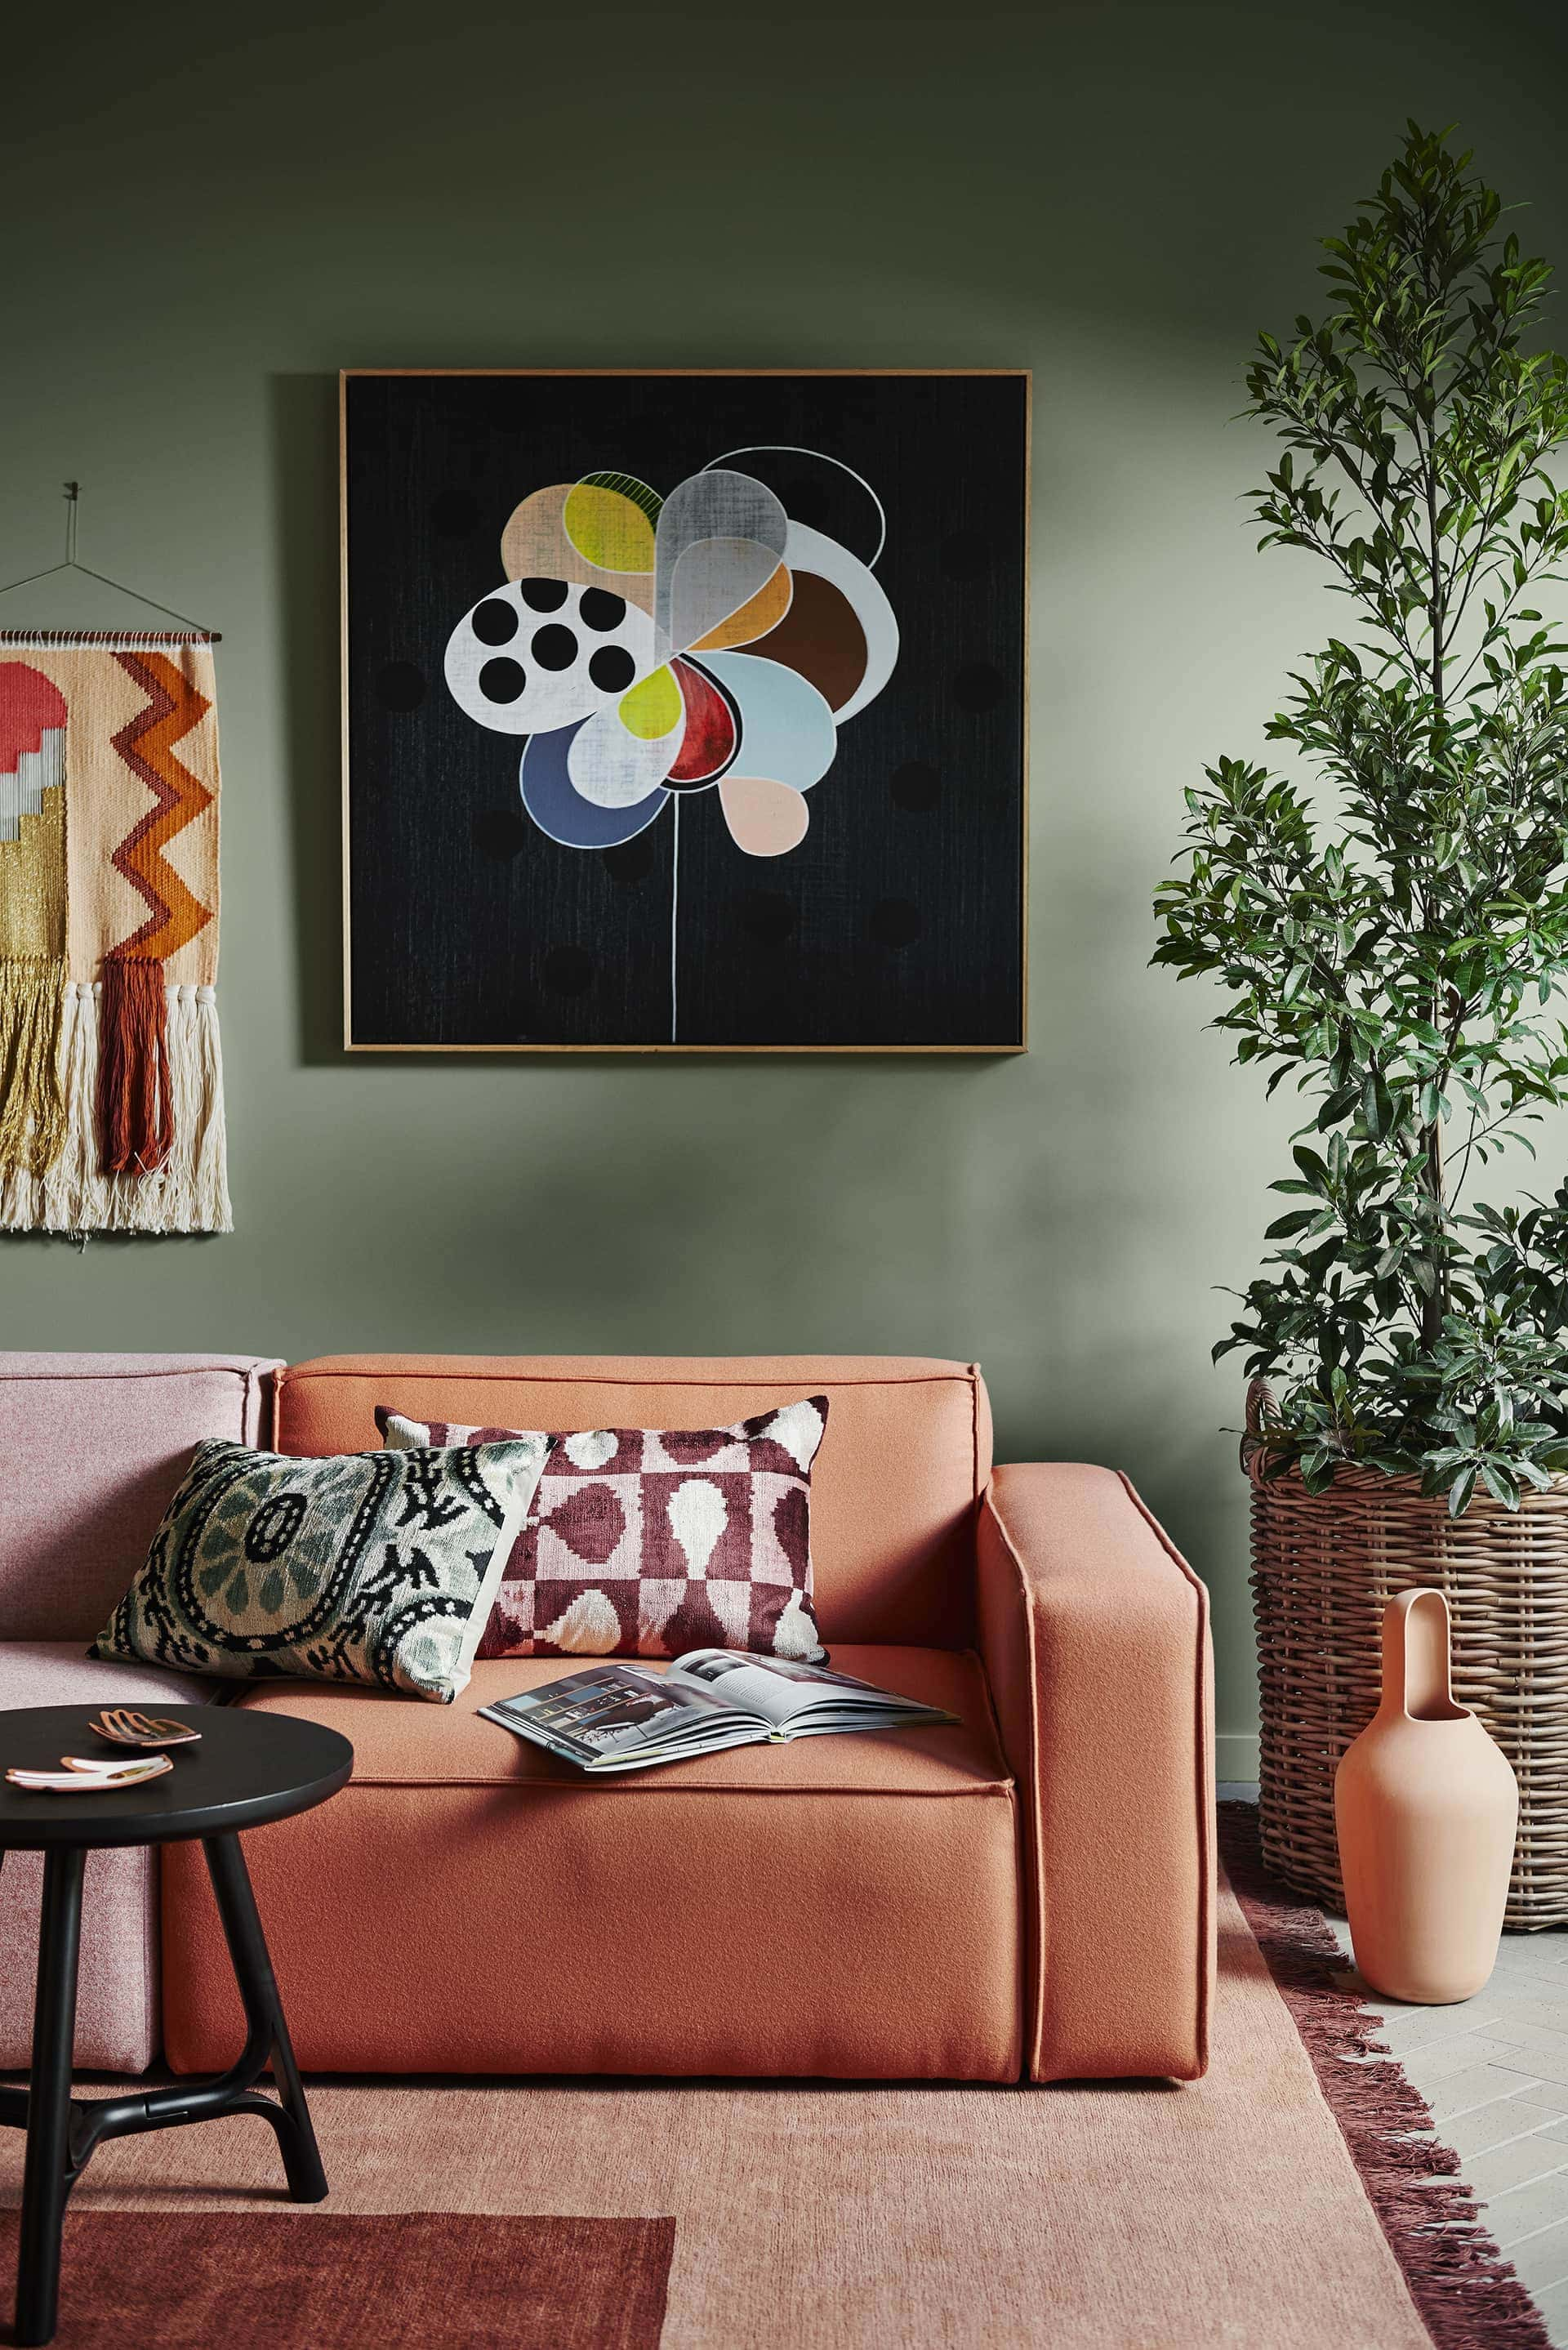 dulux 2018 paint colour forecast kinship olive green wall with terracotta sofa